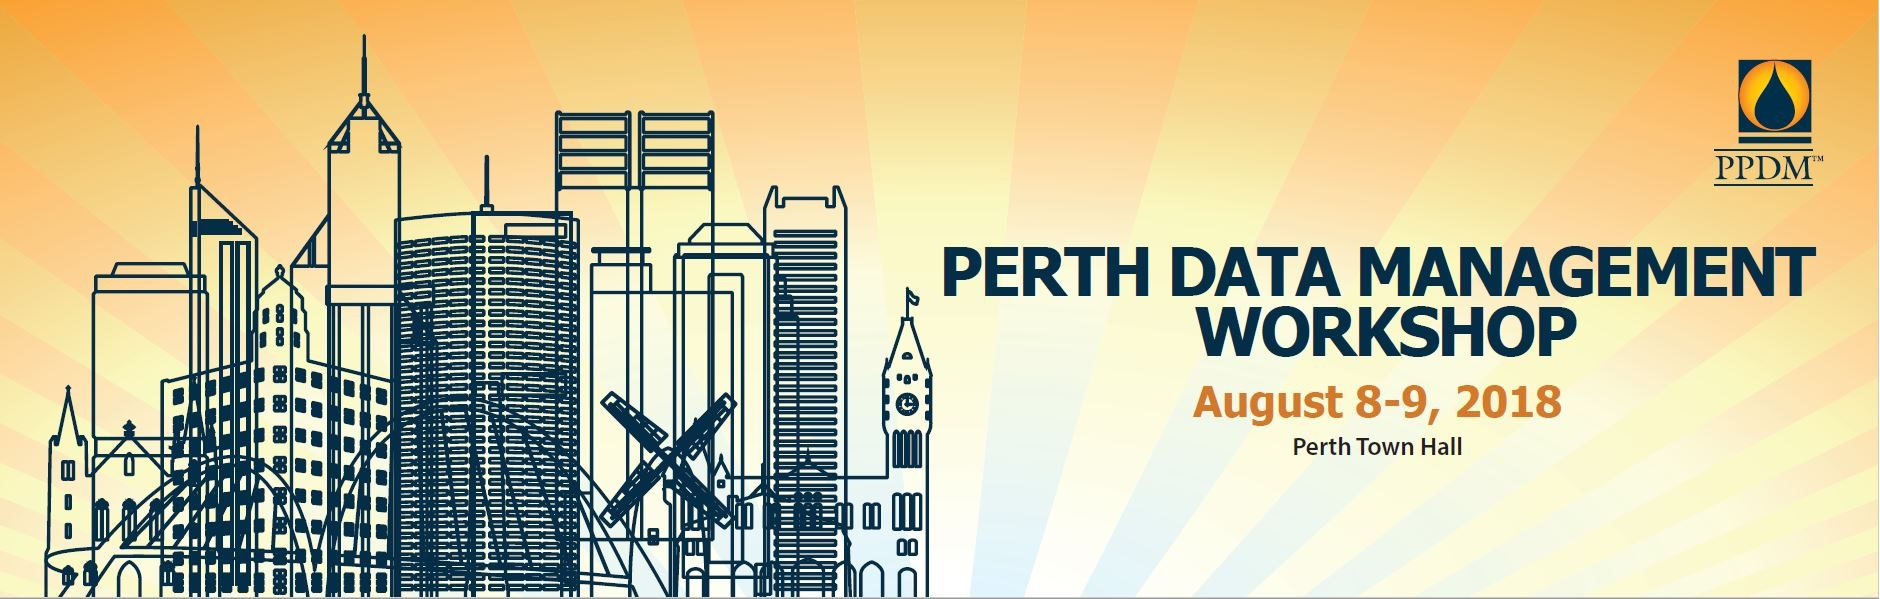 PPDM_Perth Workshop_August 2018.jpg